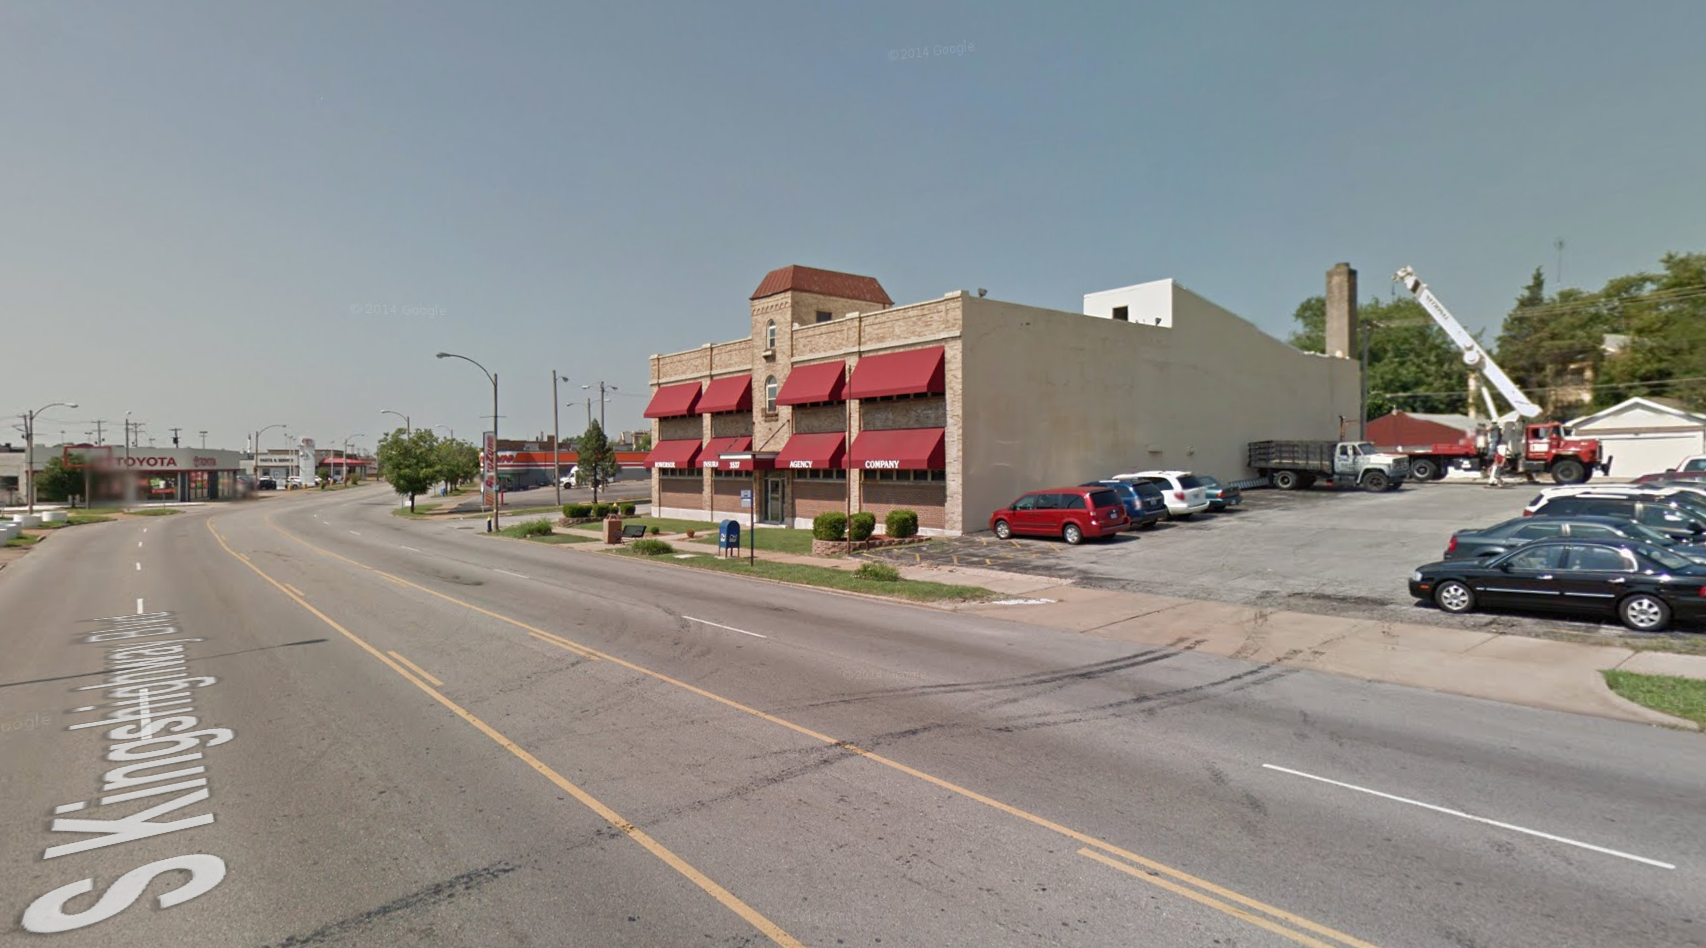 Brahm-Mitchellette Motor Car Company on Kingshighway Being Converted to Apartments